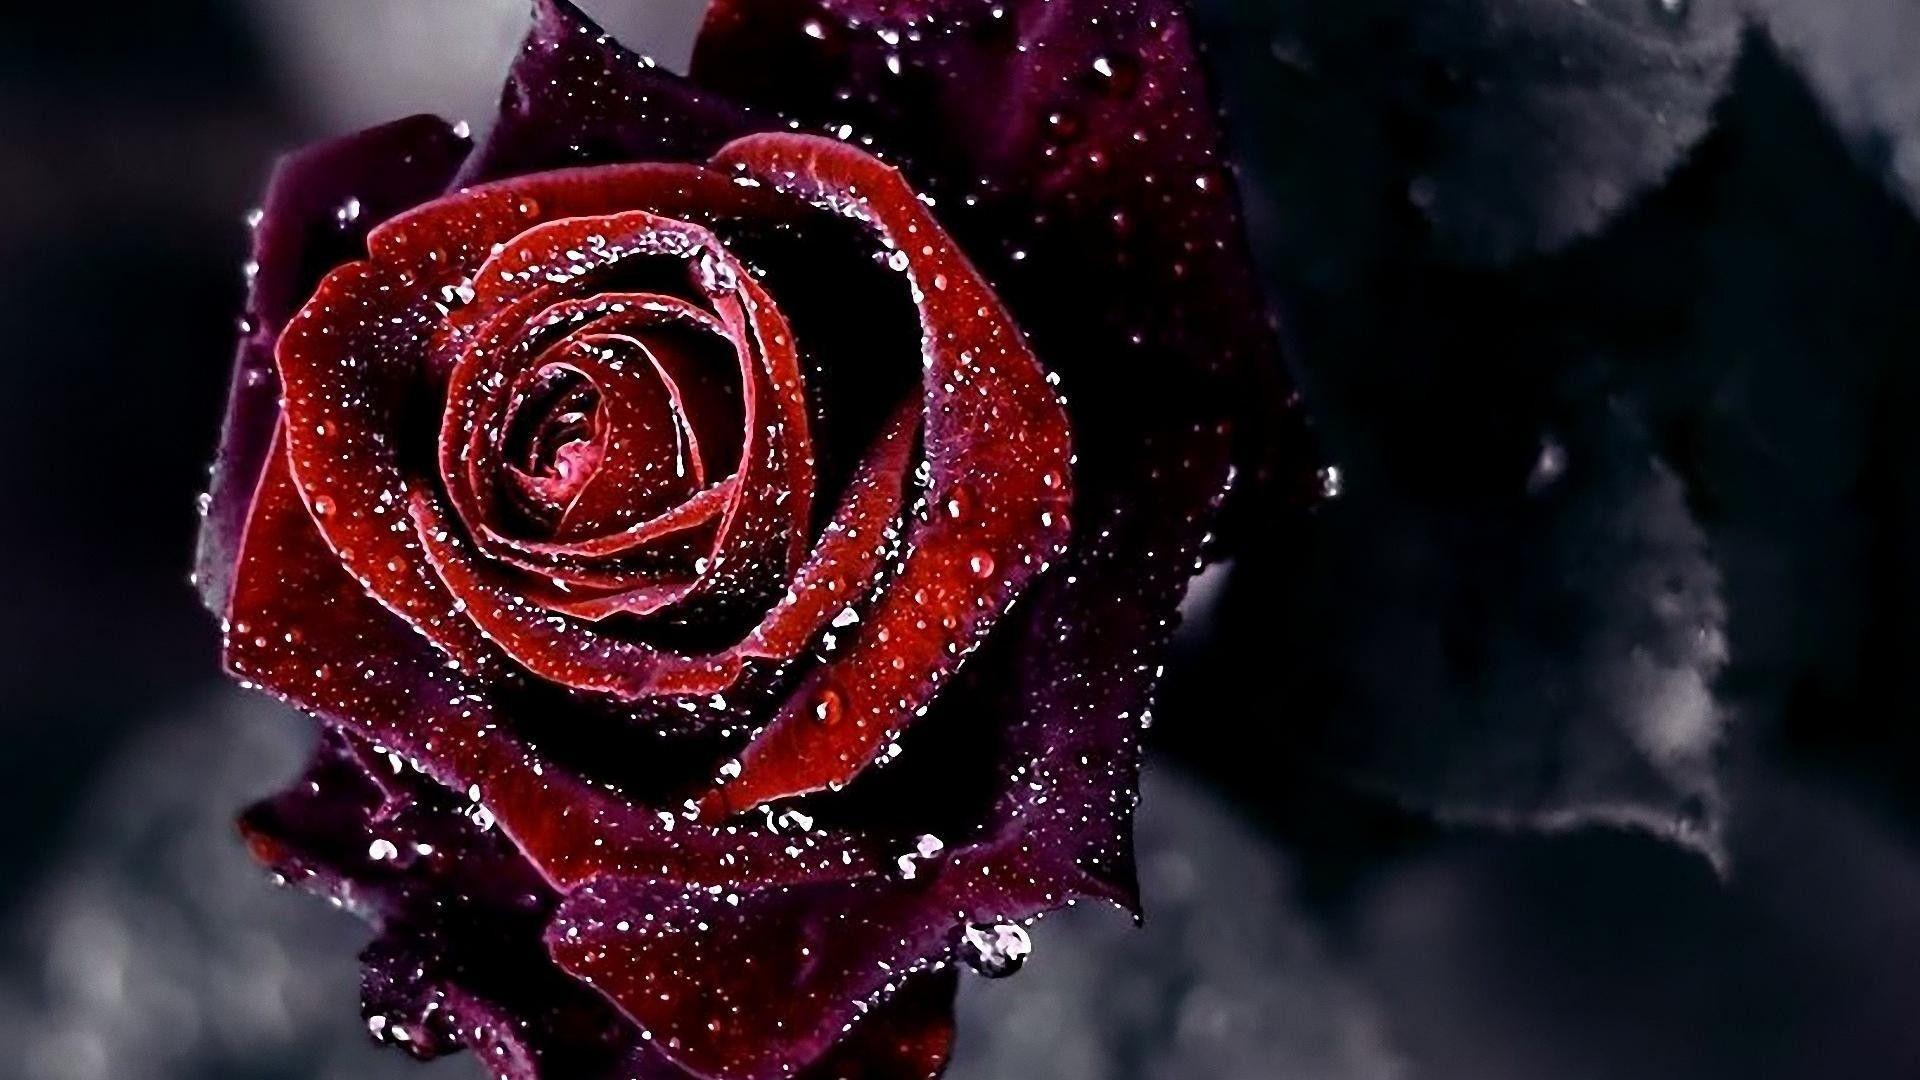 Wallpapers Of Black Roses